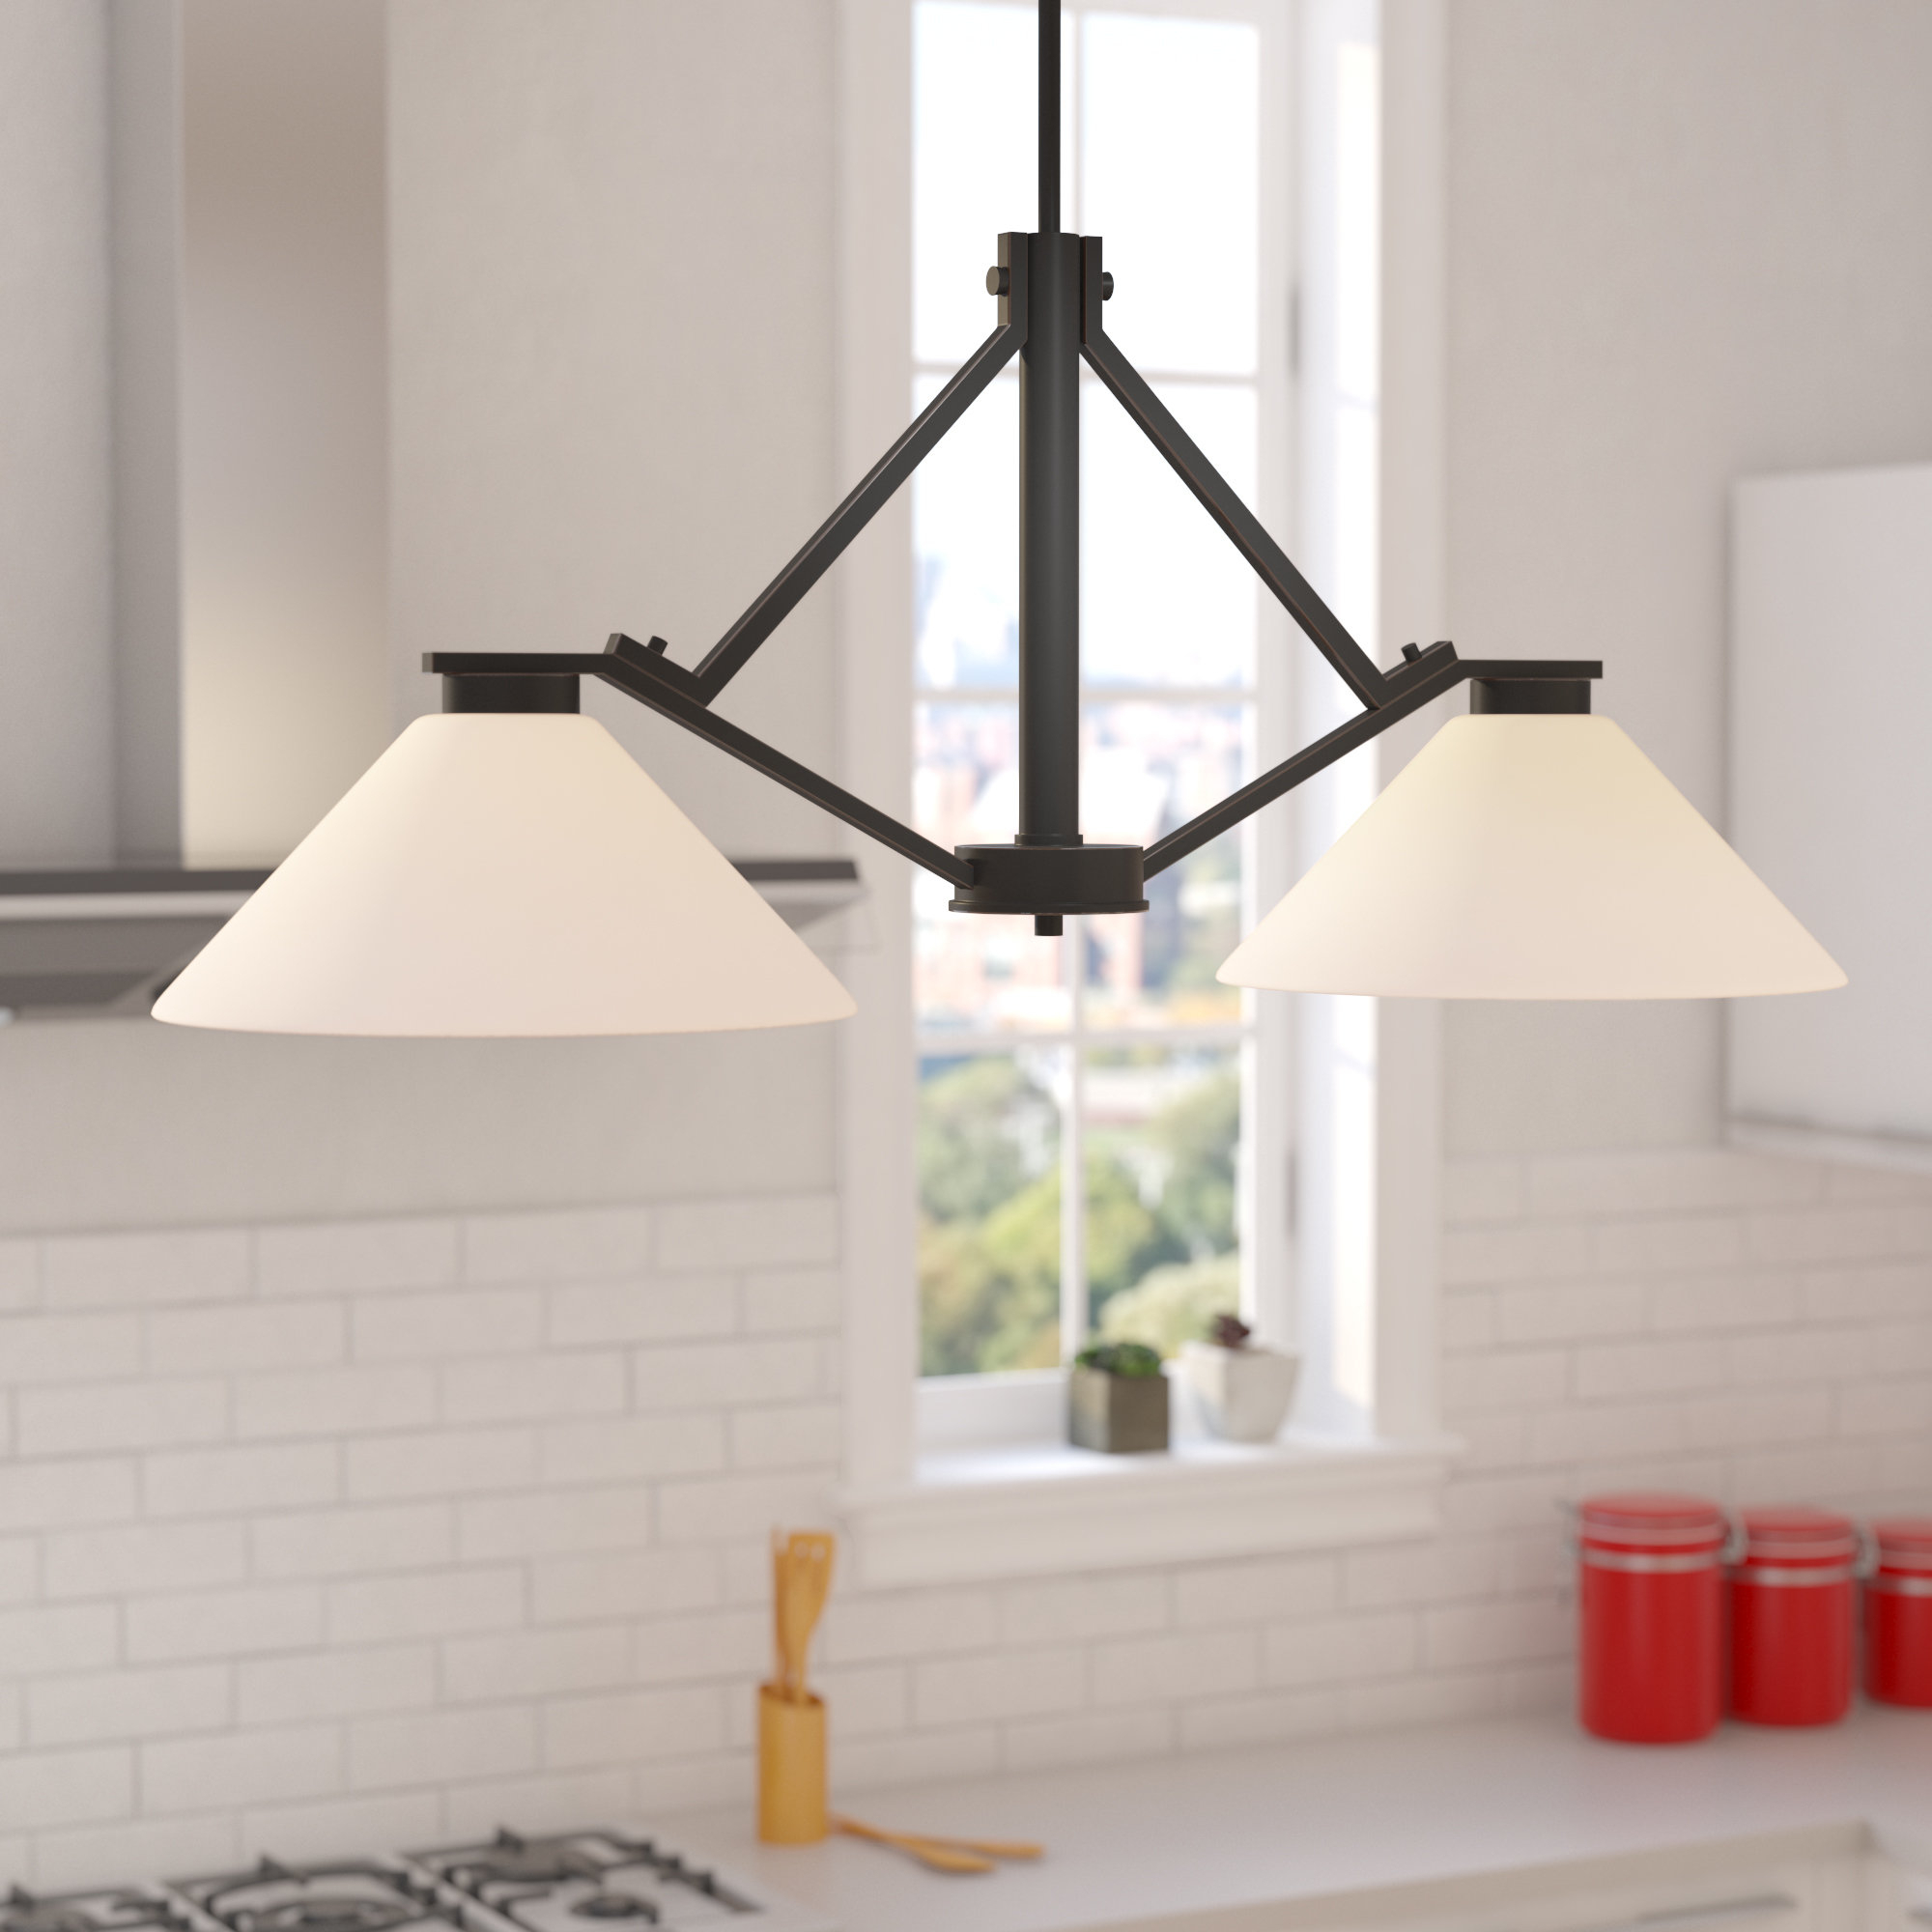 Best And Newest Naccarato 2 Light Kitchen Island Pendant For Euclid 2 Light Kitchen Island Linear Pendants (View 4 of 20)